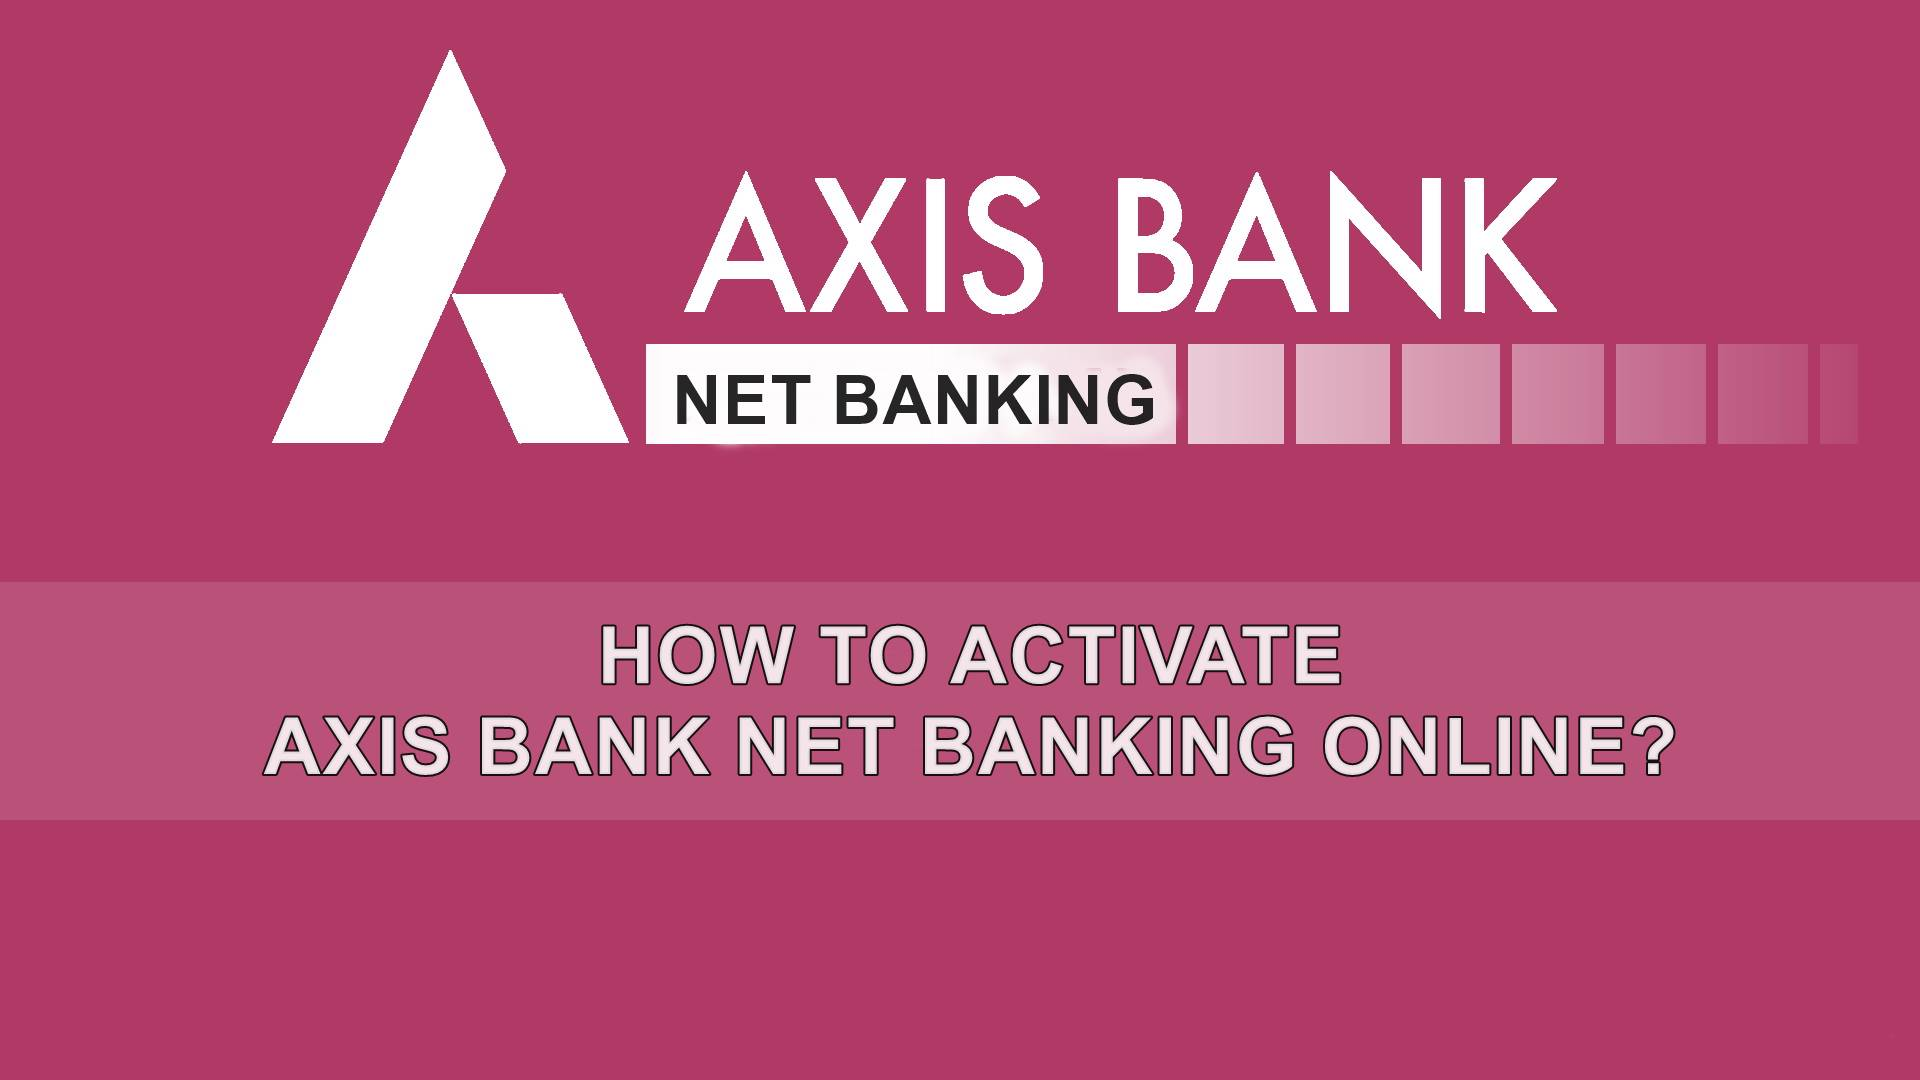 how to activate axis bank net banking online